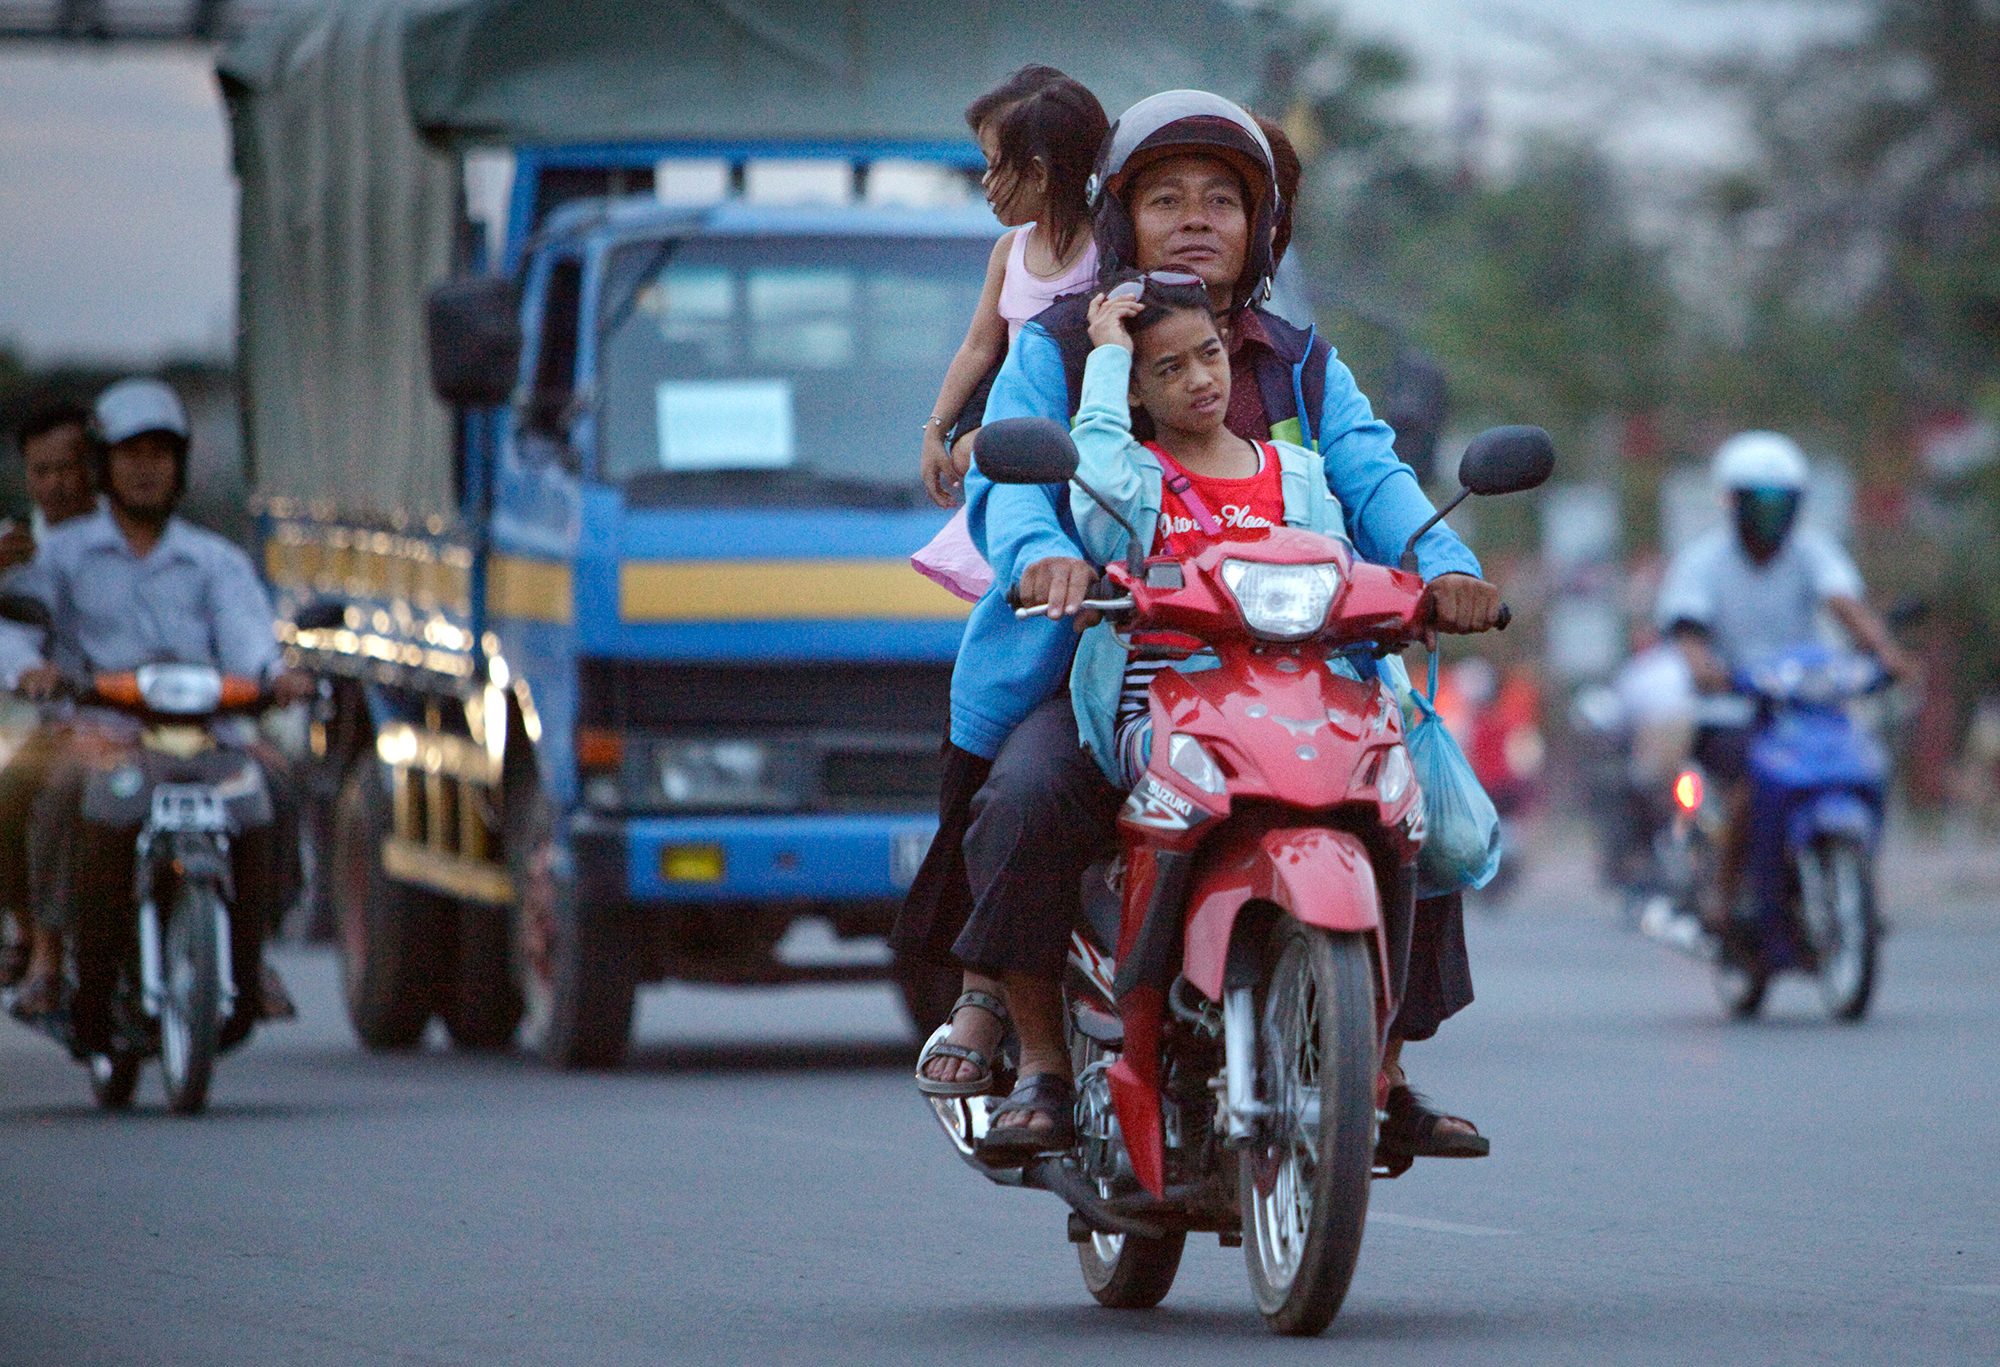 Helmet use is on the rise in Phnom Penh, Cambodia, but large gaps still remain